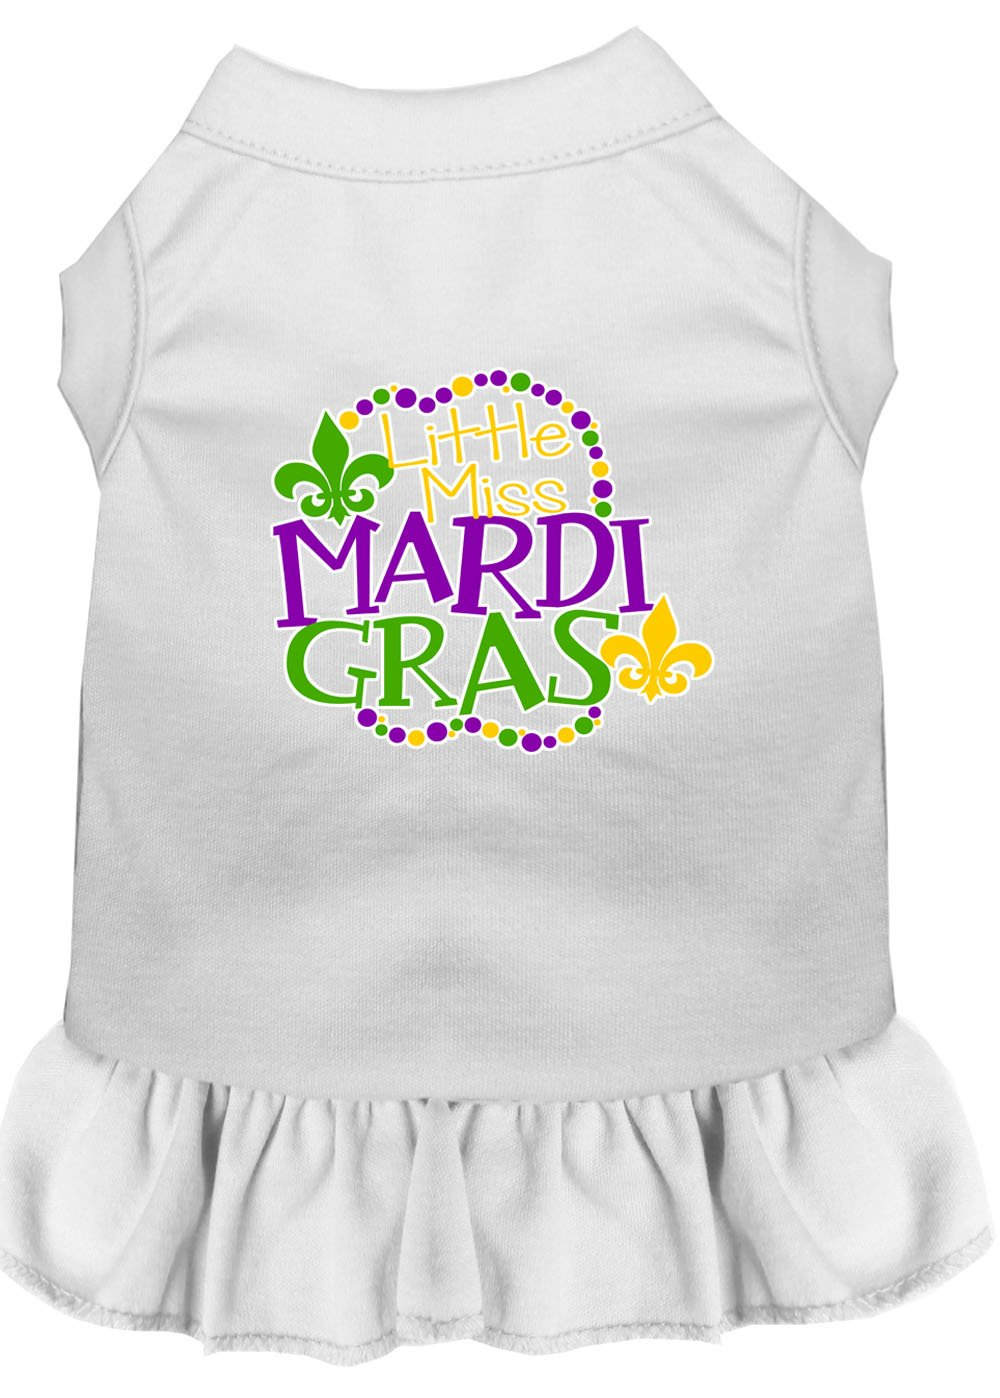 Miss Mardi Gras Screen Print Mardi Gras Dog Dress Baby - staygoldendoodle.com